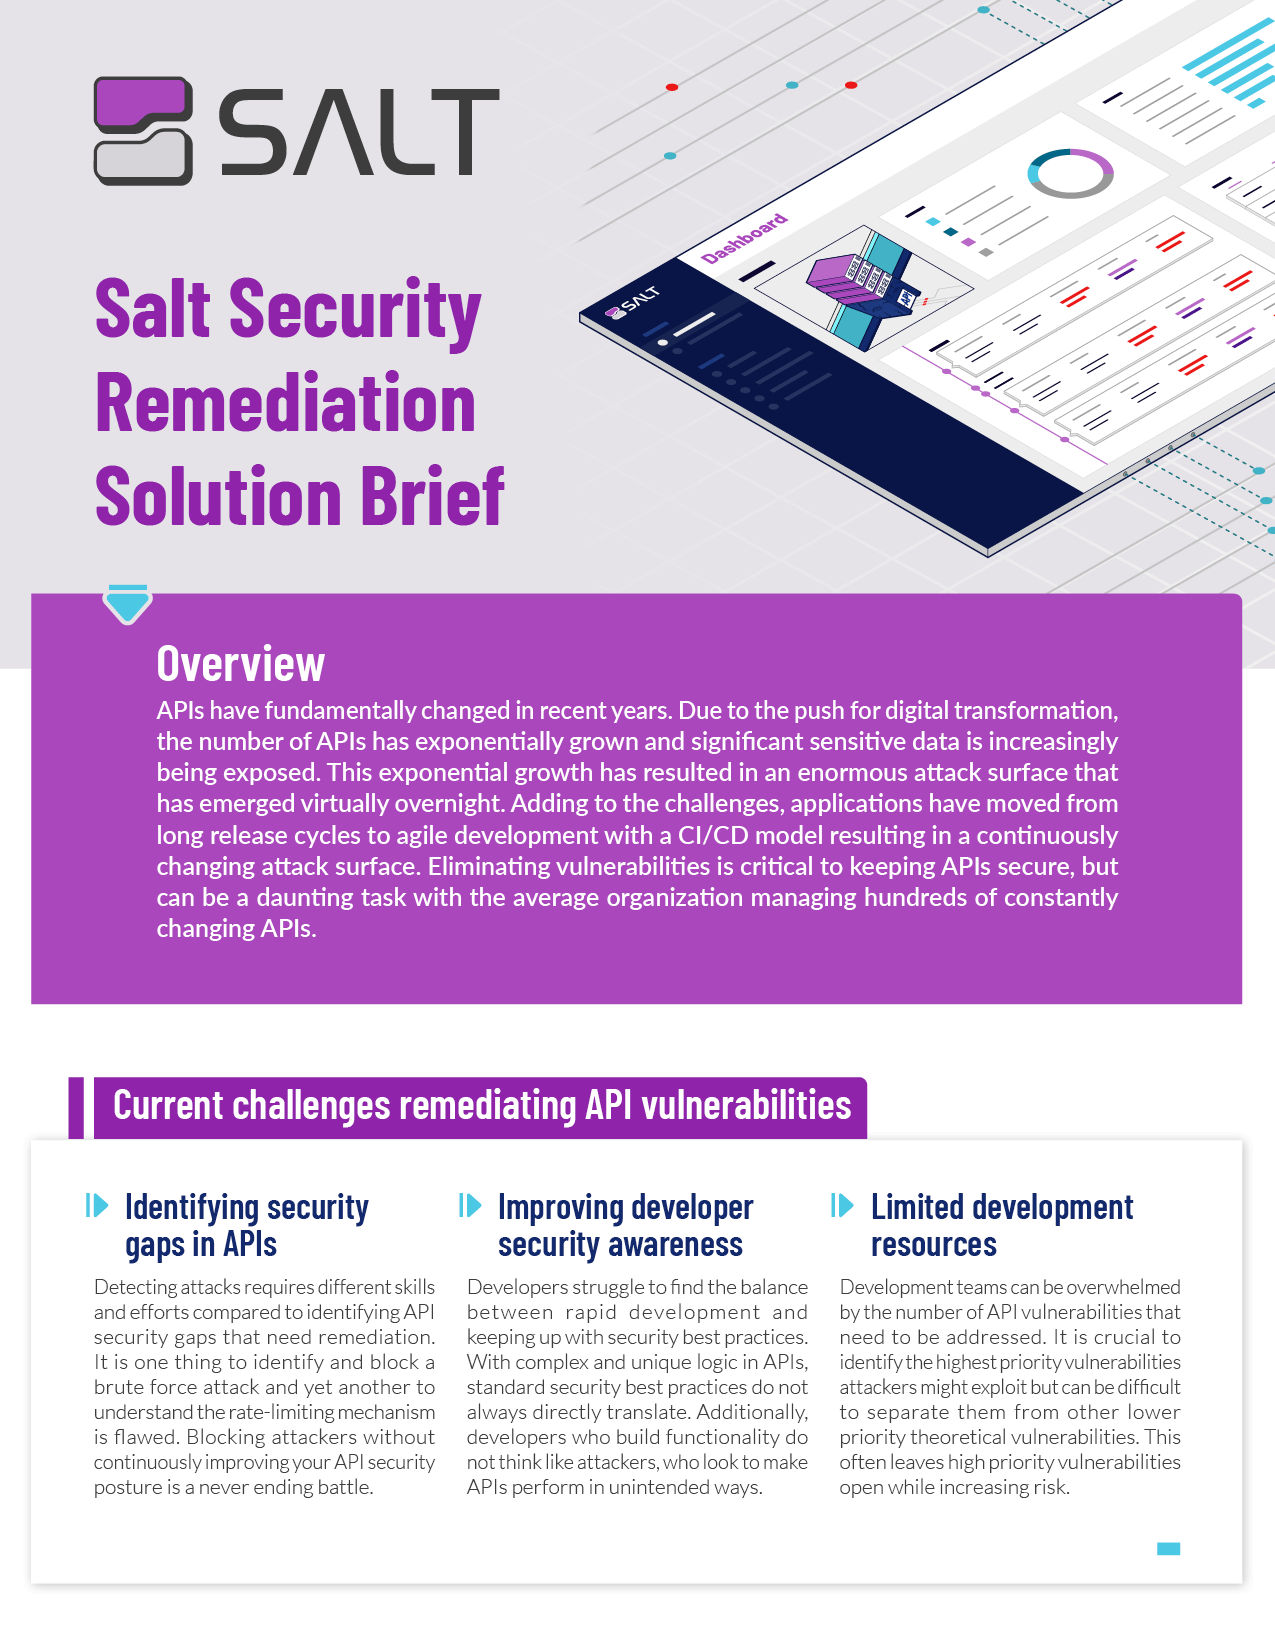 Remediation Solution Brief